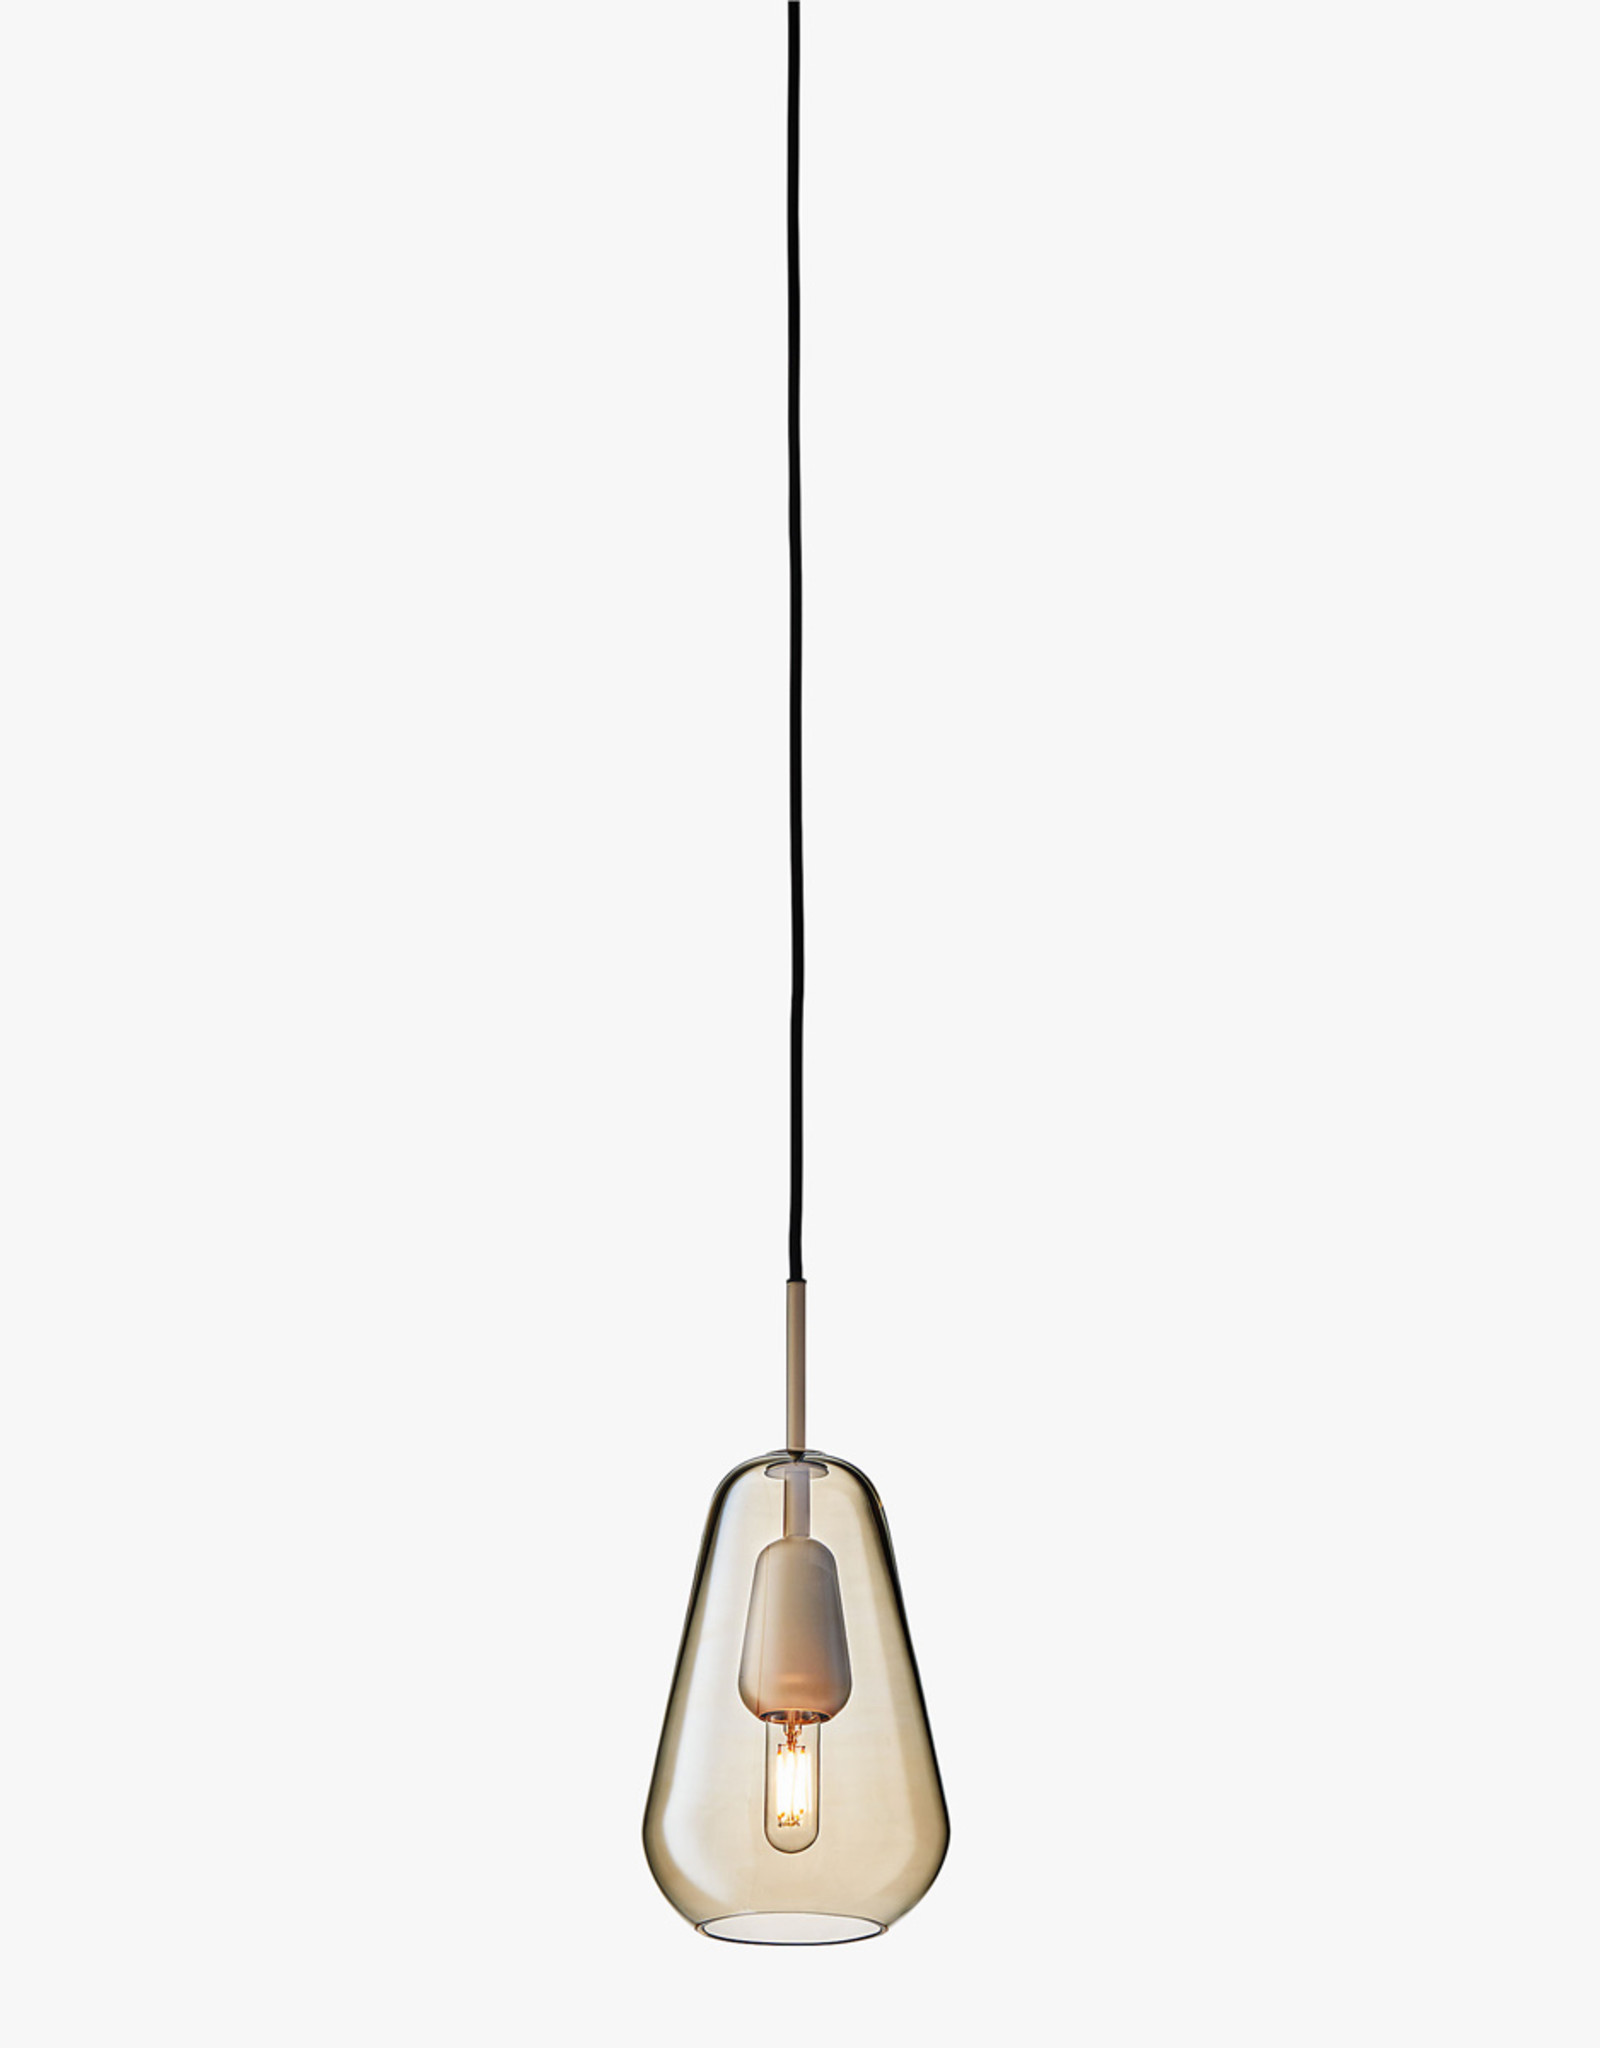 Nuura Anoli 1 pendant by Sofie Refer   S   Nordic gold/gold